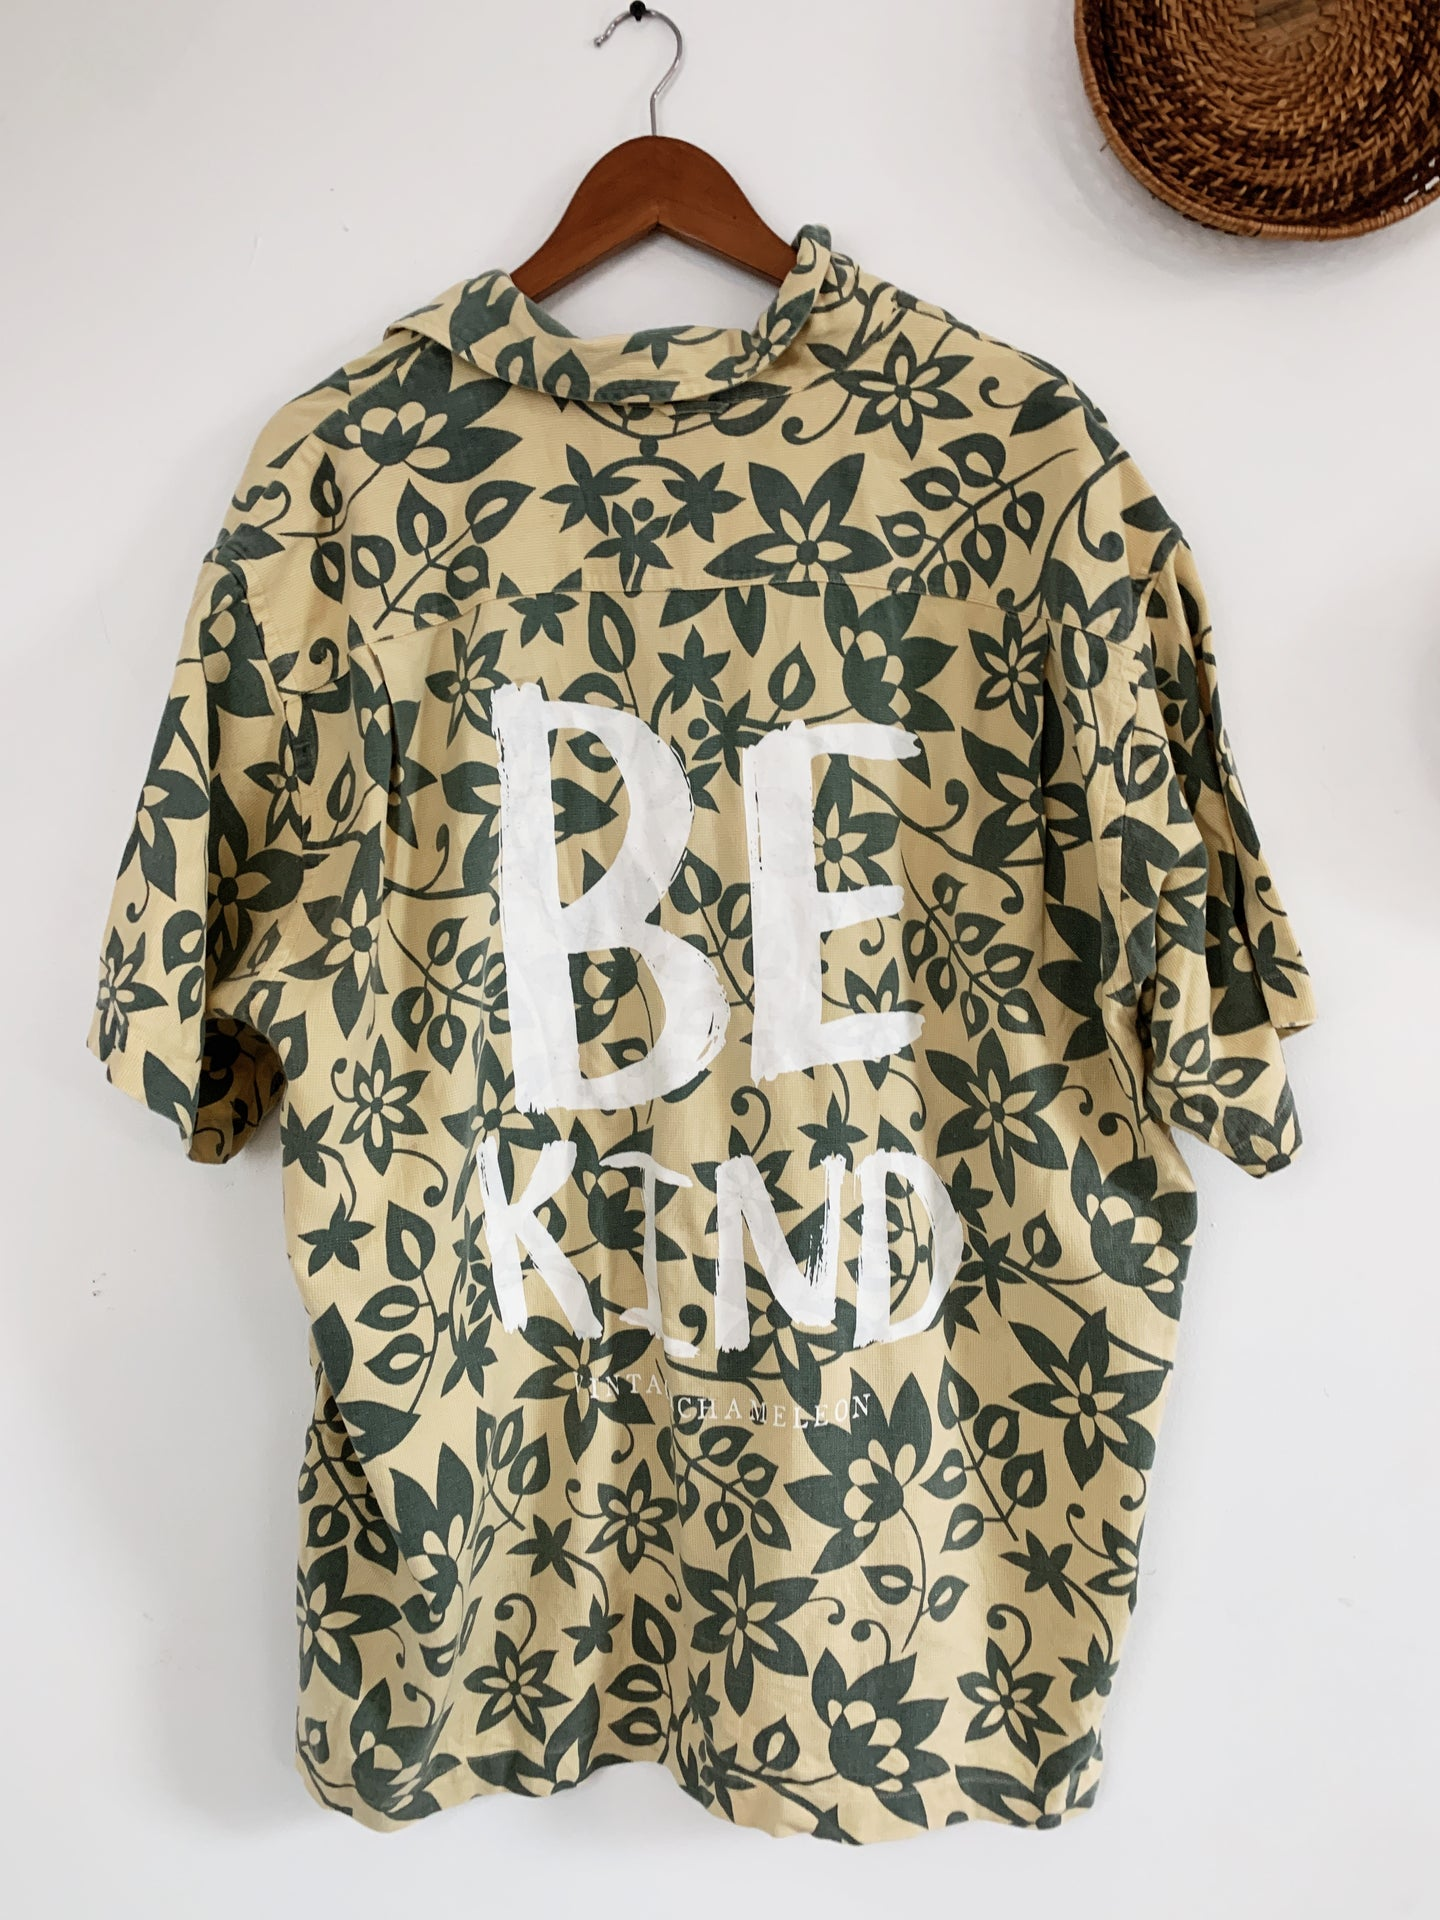 Be Kind Hawaiian Shirt XL - VintageChameleon